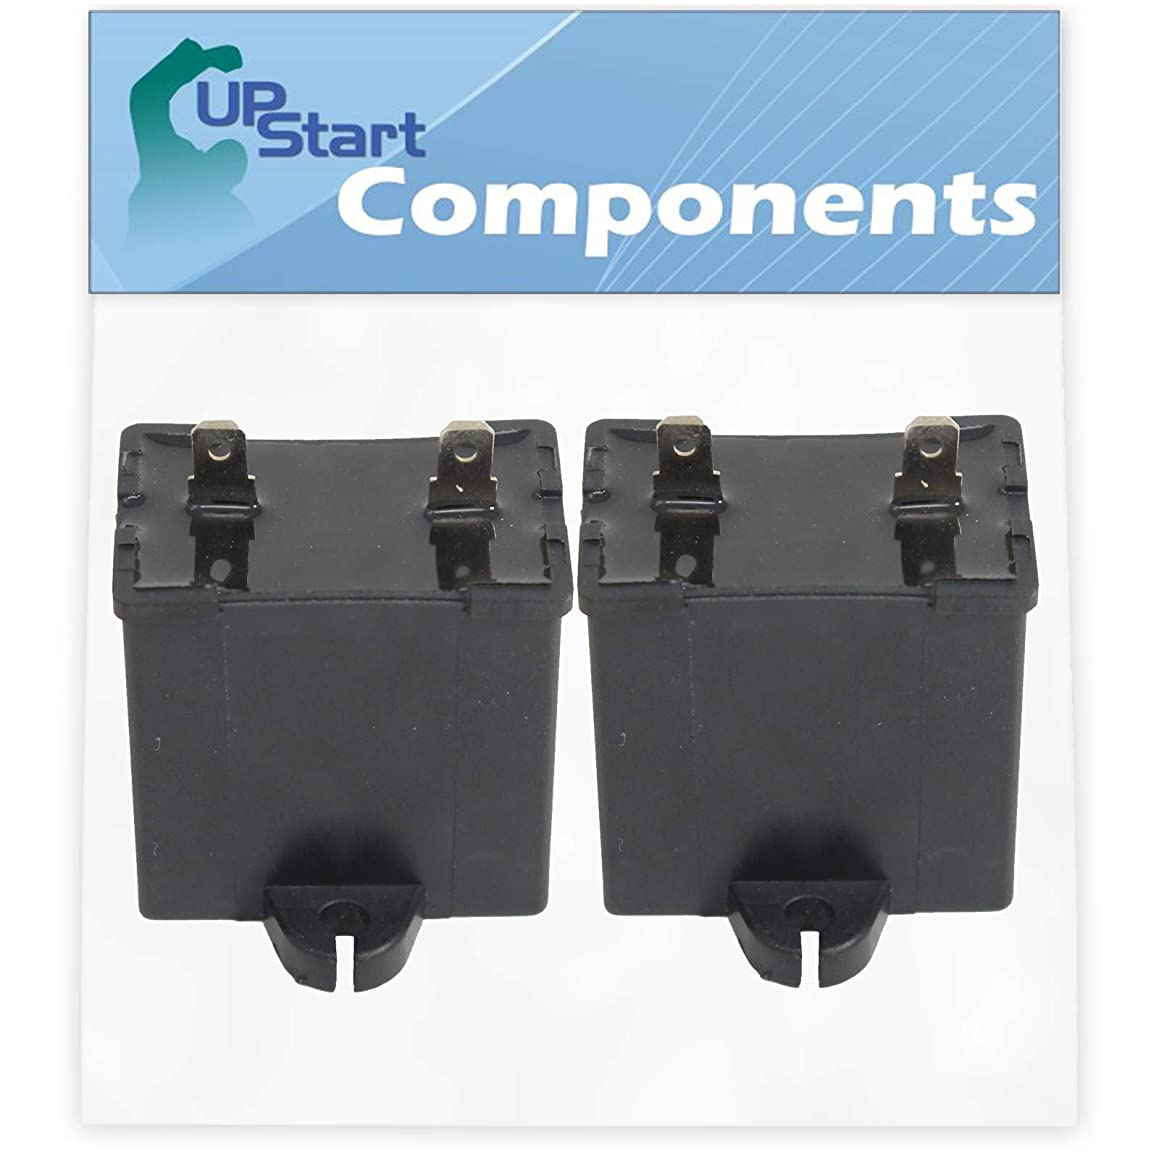 2-Pack W10662129 Refrigerator and Freezer Compressor Run Capacitor Replacement for Kenmore/Sears 10656184500 Refrigerator - Compatible with 2169373 WPW10662129 Run Capacitor